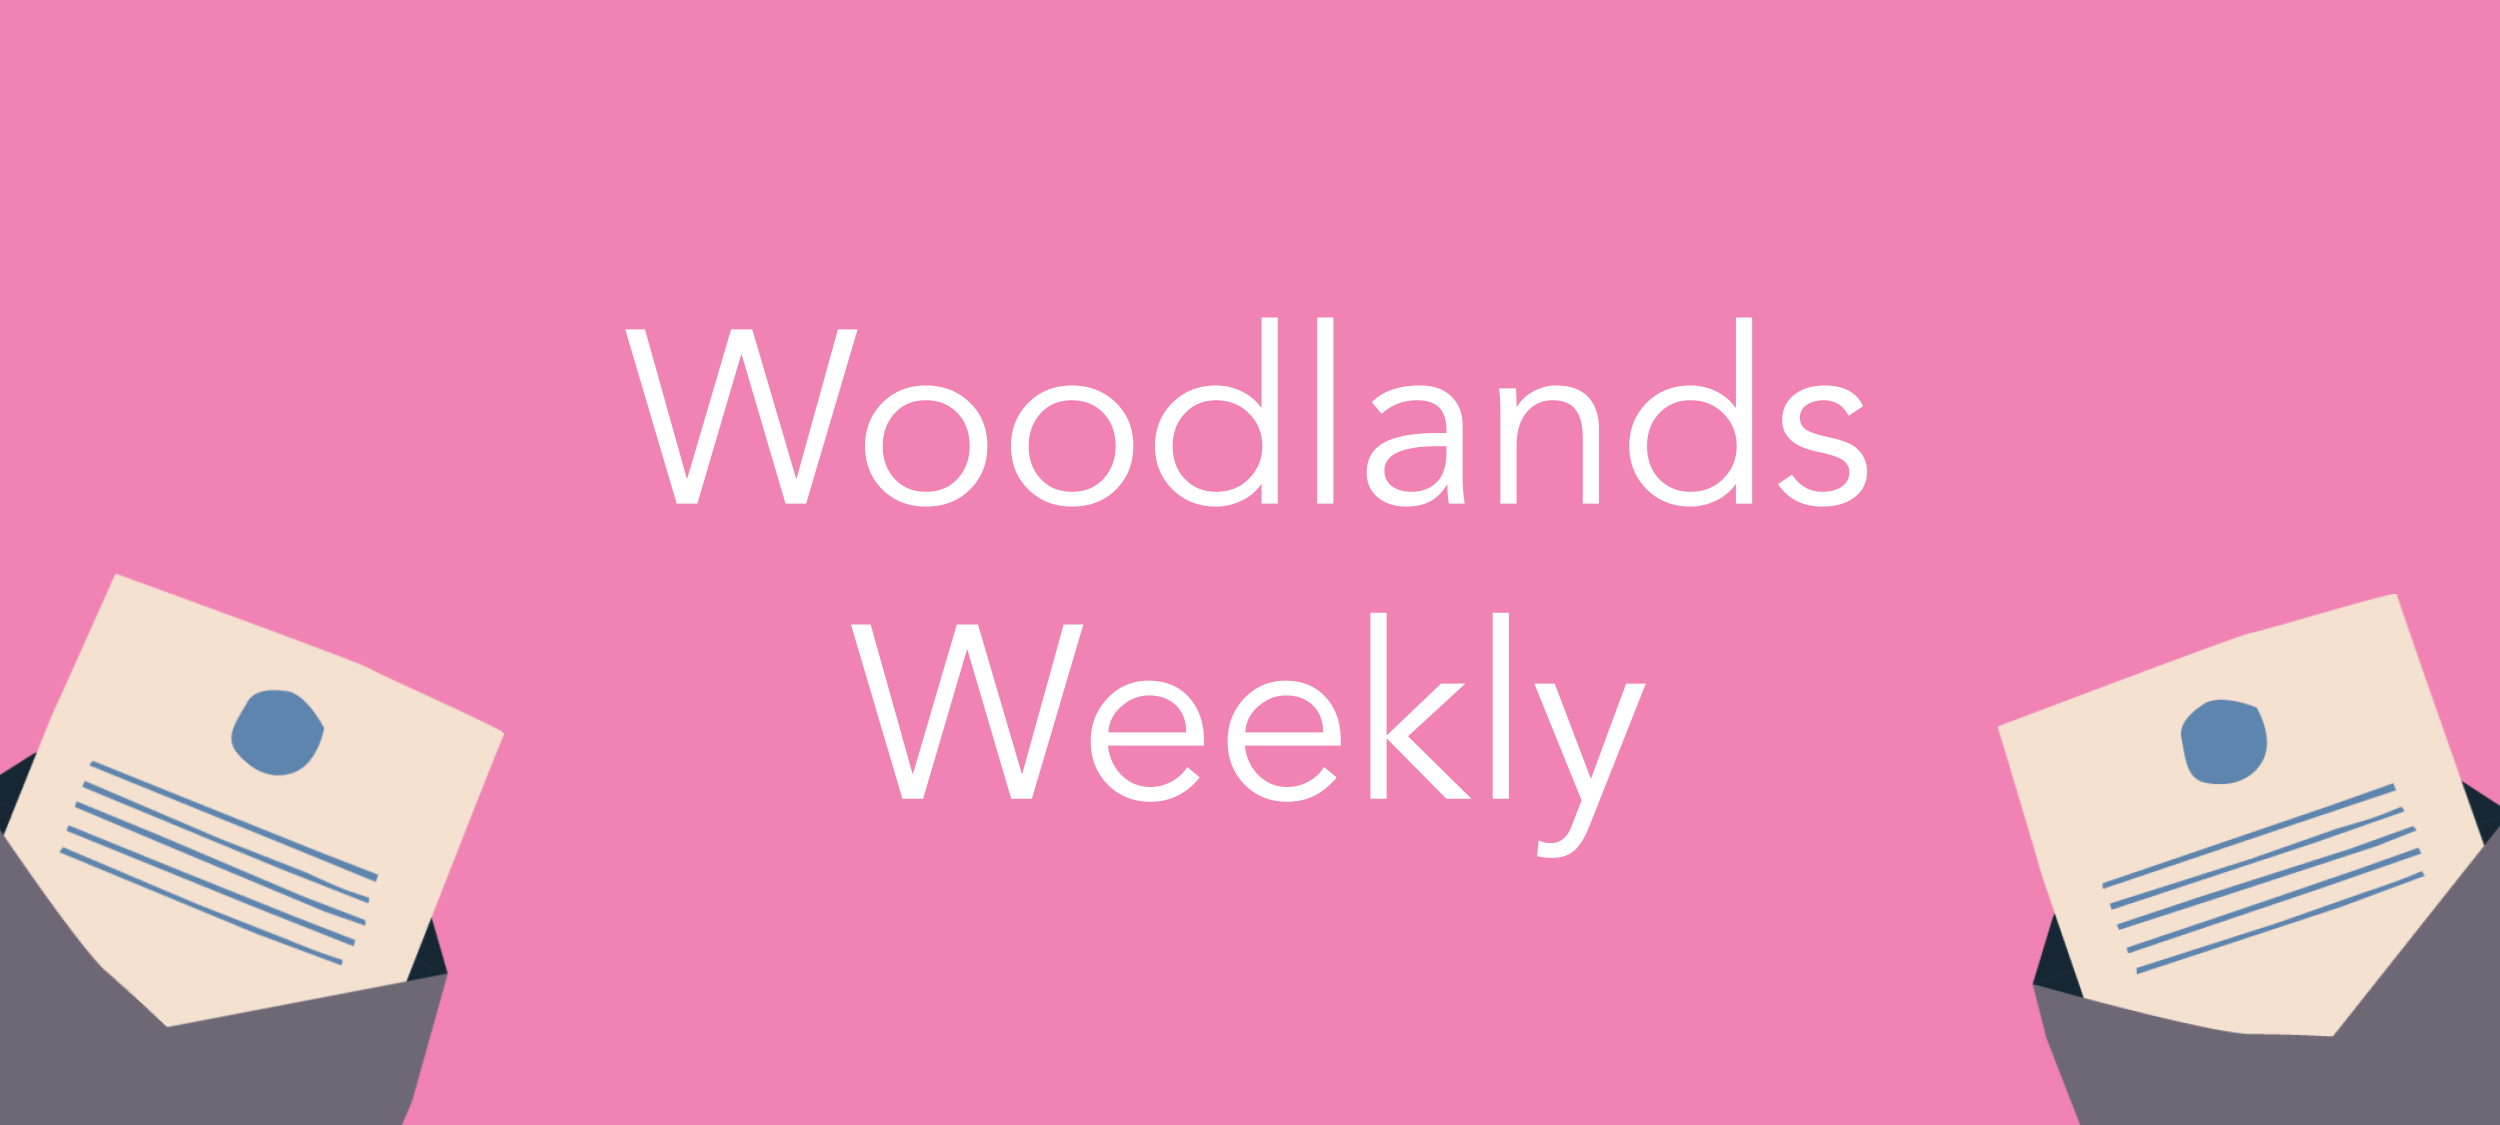 Woodlands Weekly | Friday 30th April 2021